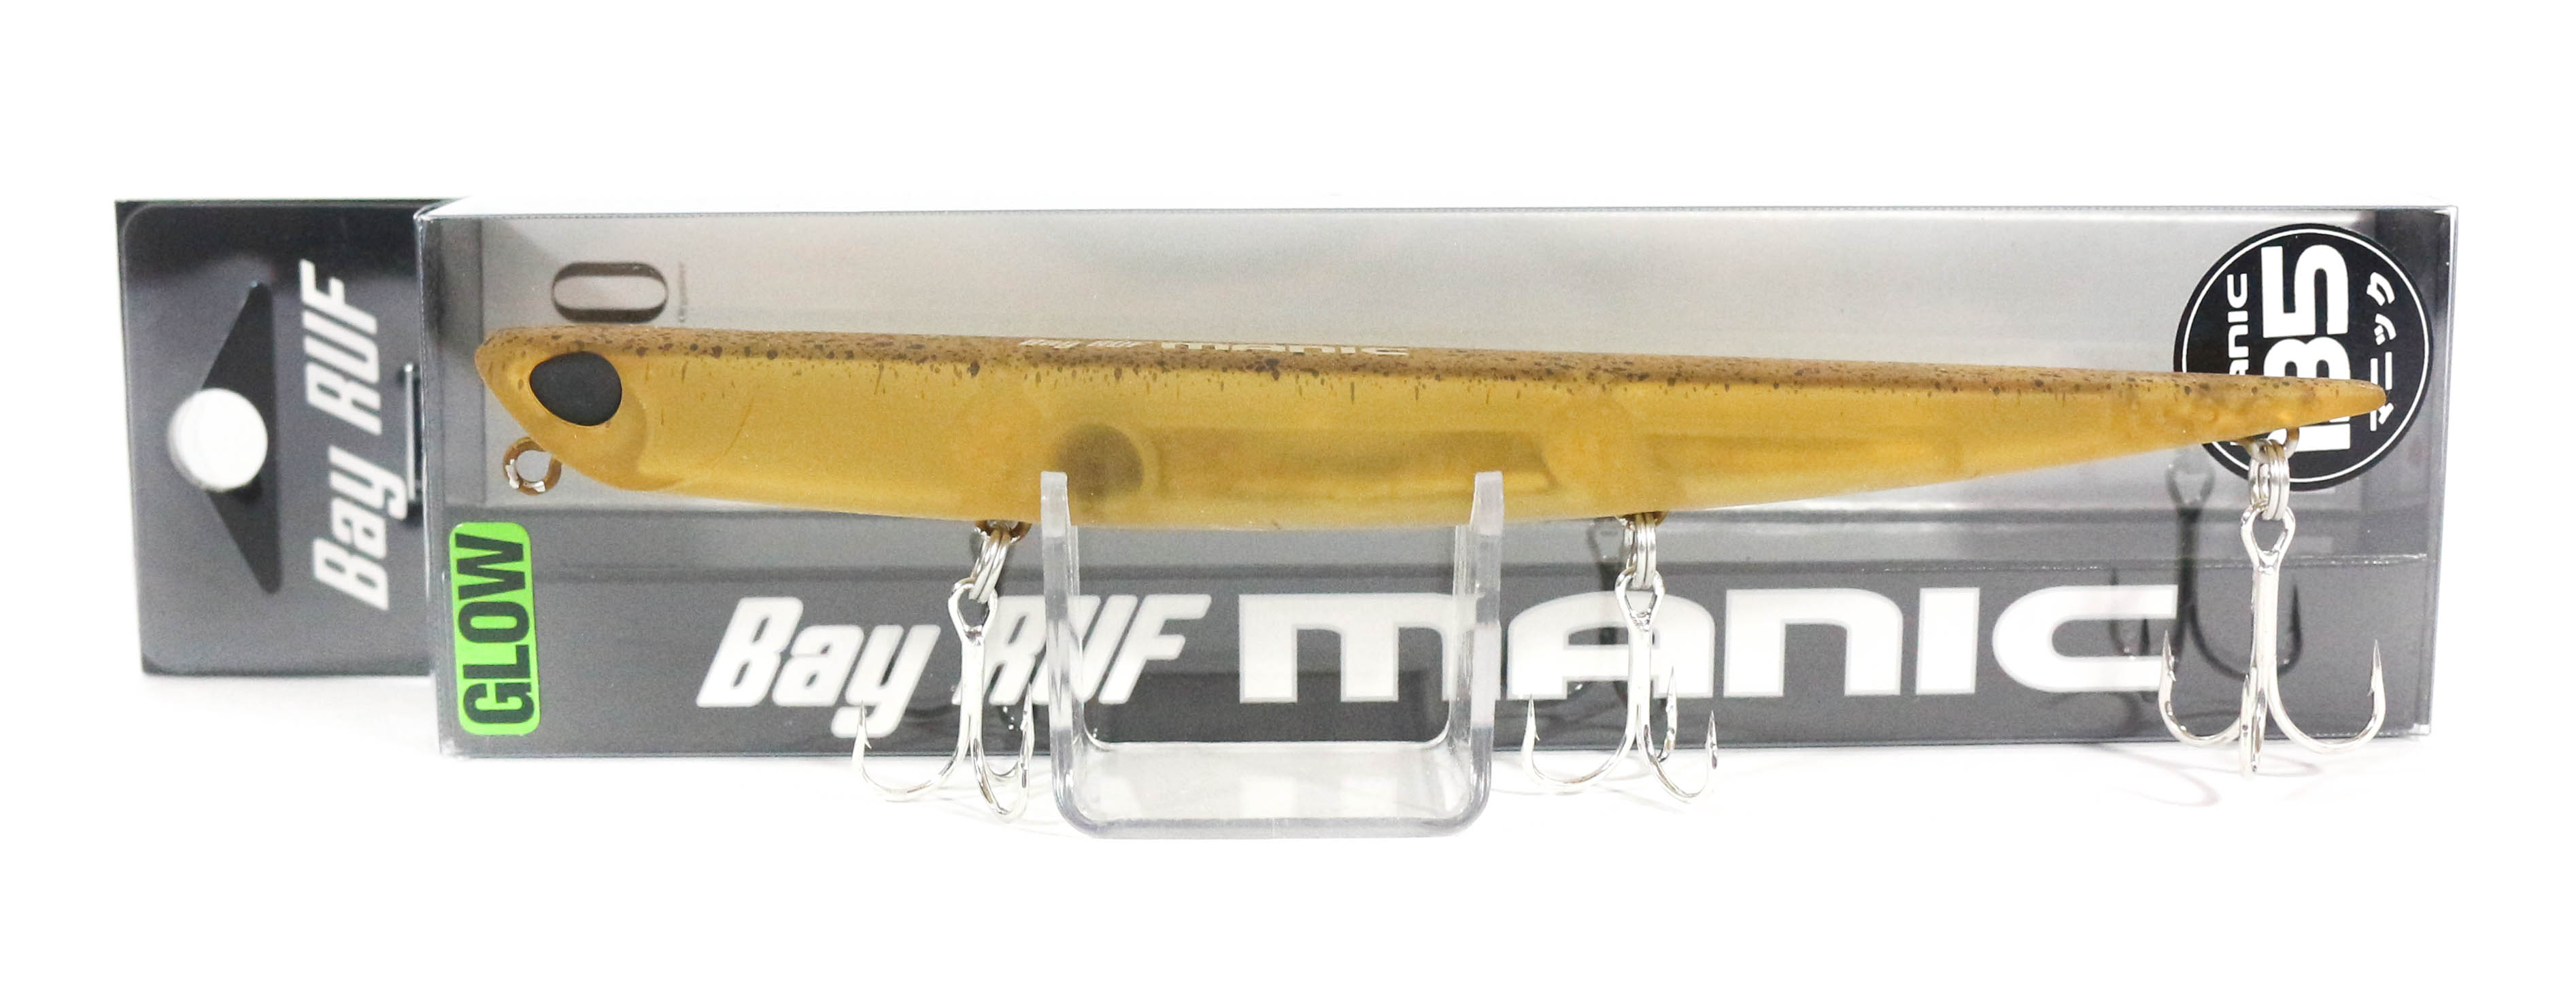 Duo Bay Ruf Manic 135 Pencil Sinking Lure CCC0290 (6962)